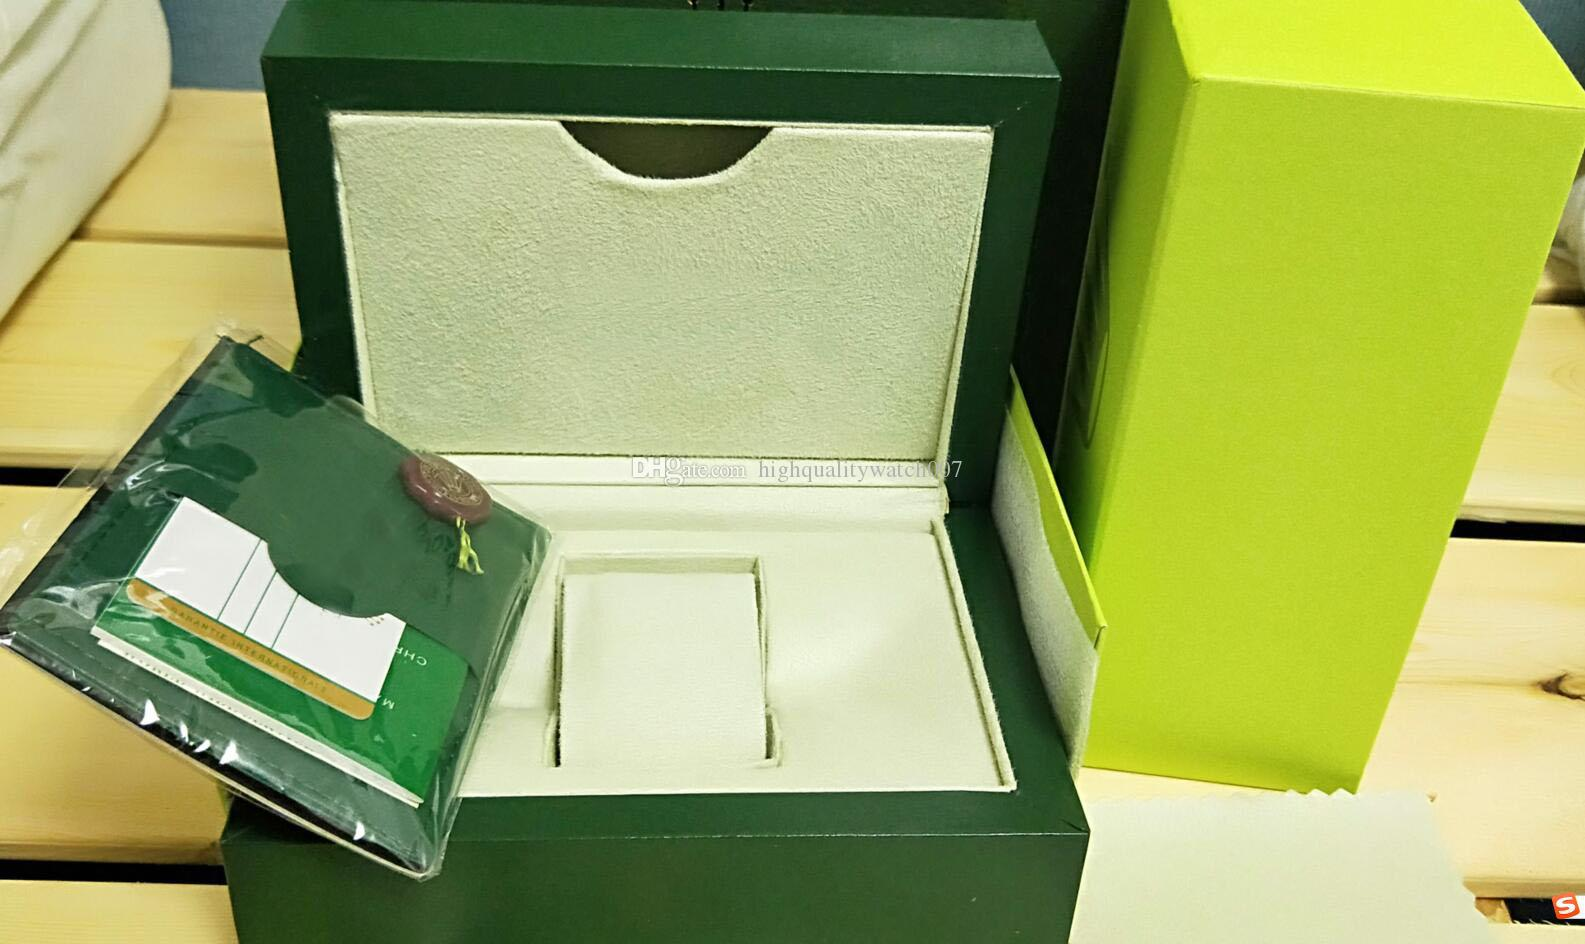 Supplier Green Brand Original Box Papers Gift Watches Boxes Leather bag Card 84mm*134mm*185mm 0.7KG For 116610 116660 116613